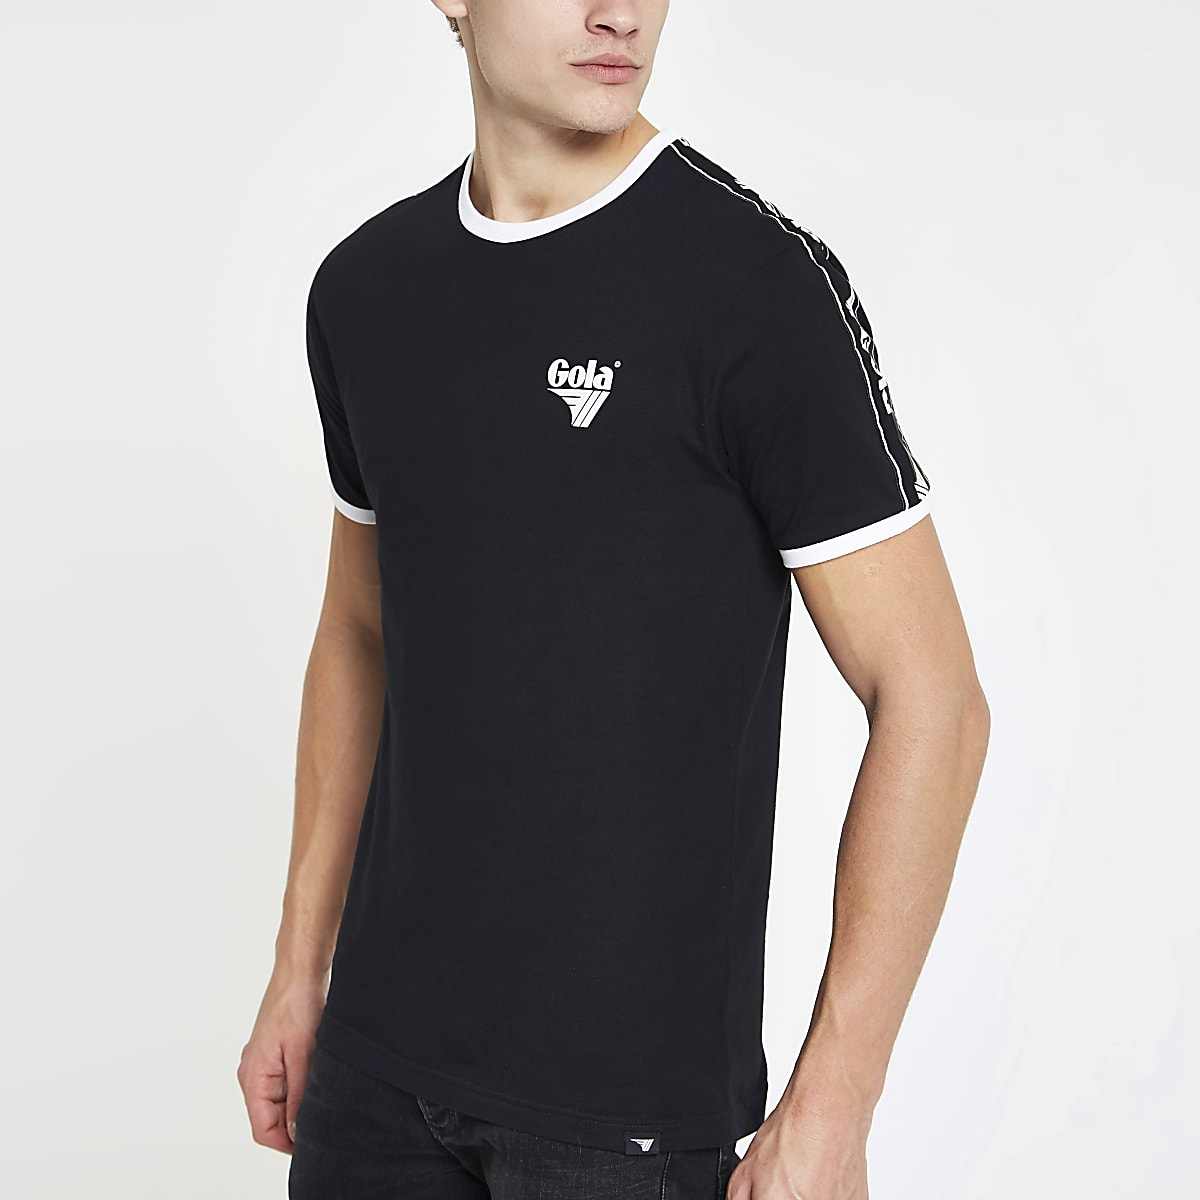 Gola black tipped crew neck T-shirt